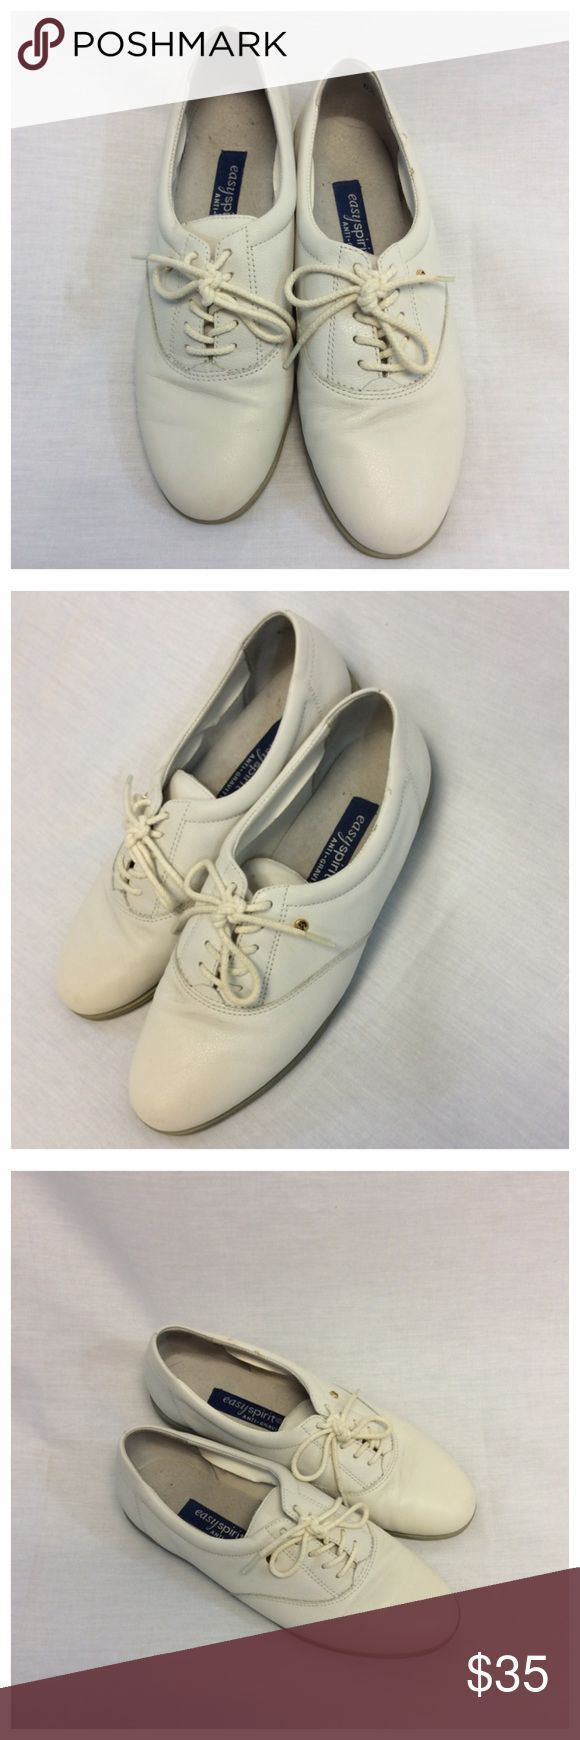 EASY SPIRIT TENNIS SHOES EASY SPIRIT TENNIS SHOES Size 6.5 (063) Easy Spirit Shoes Sneakers